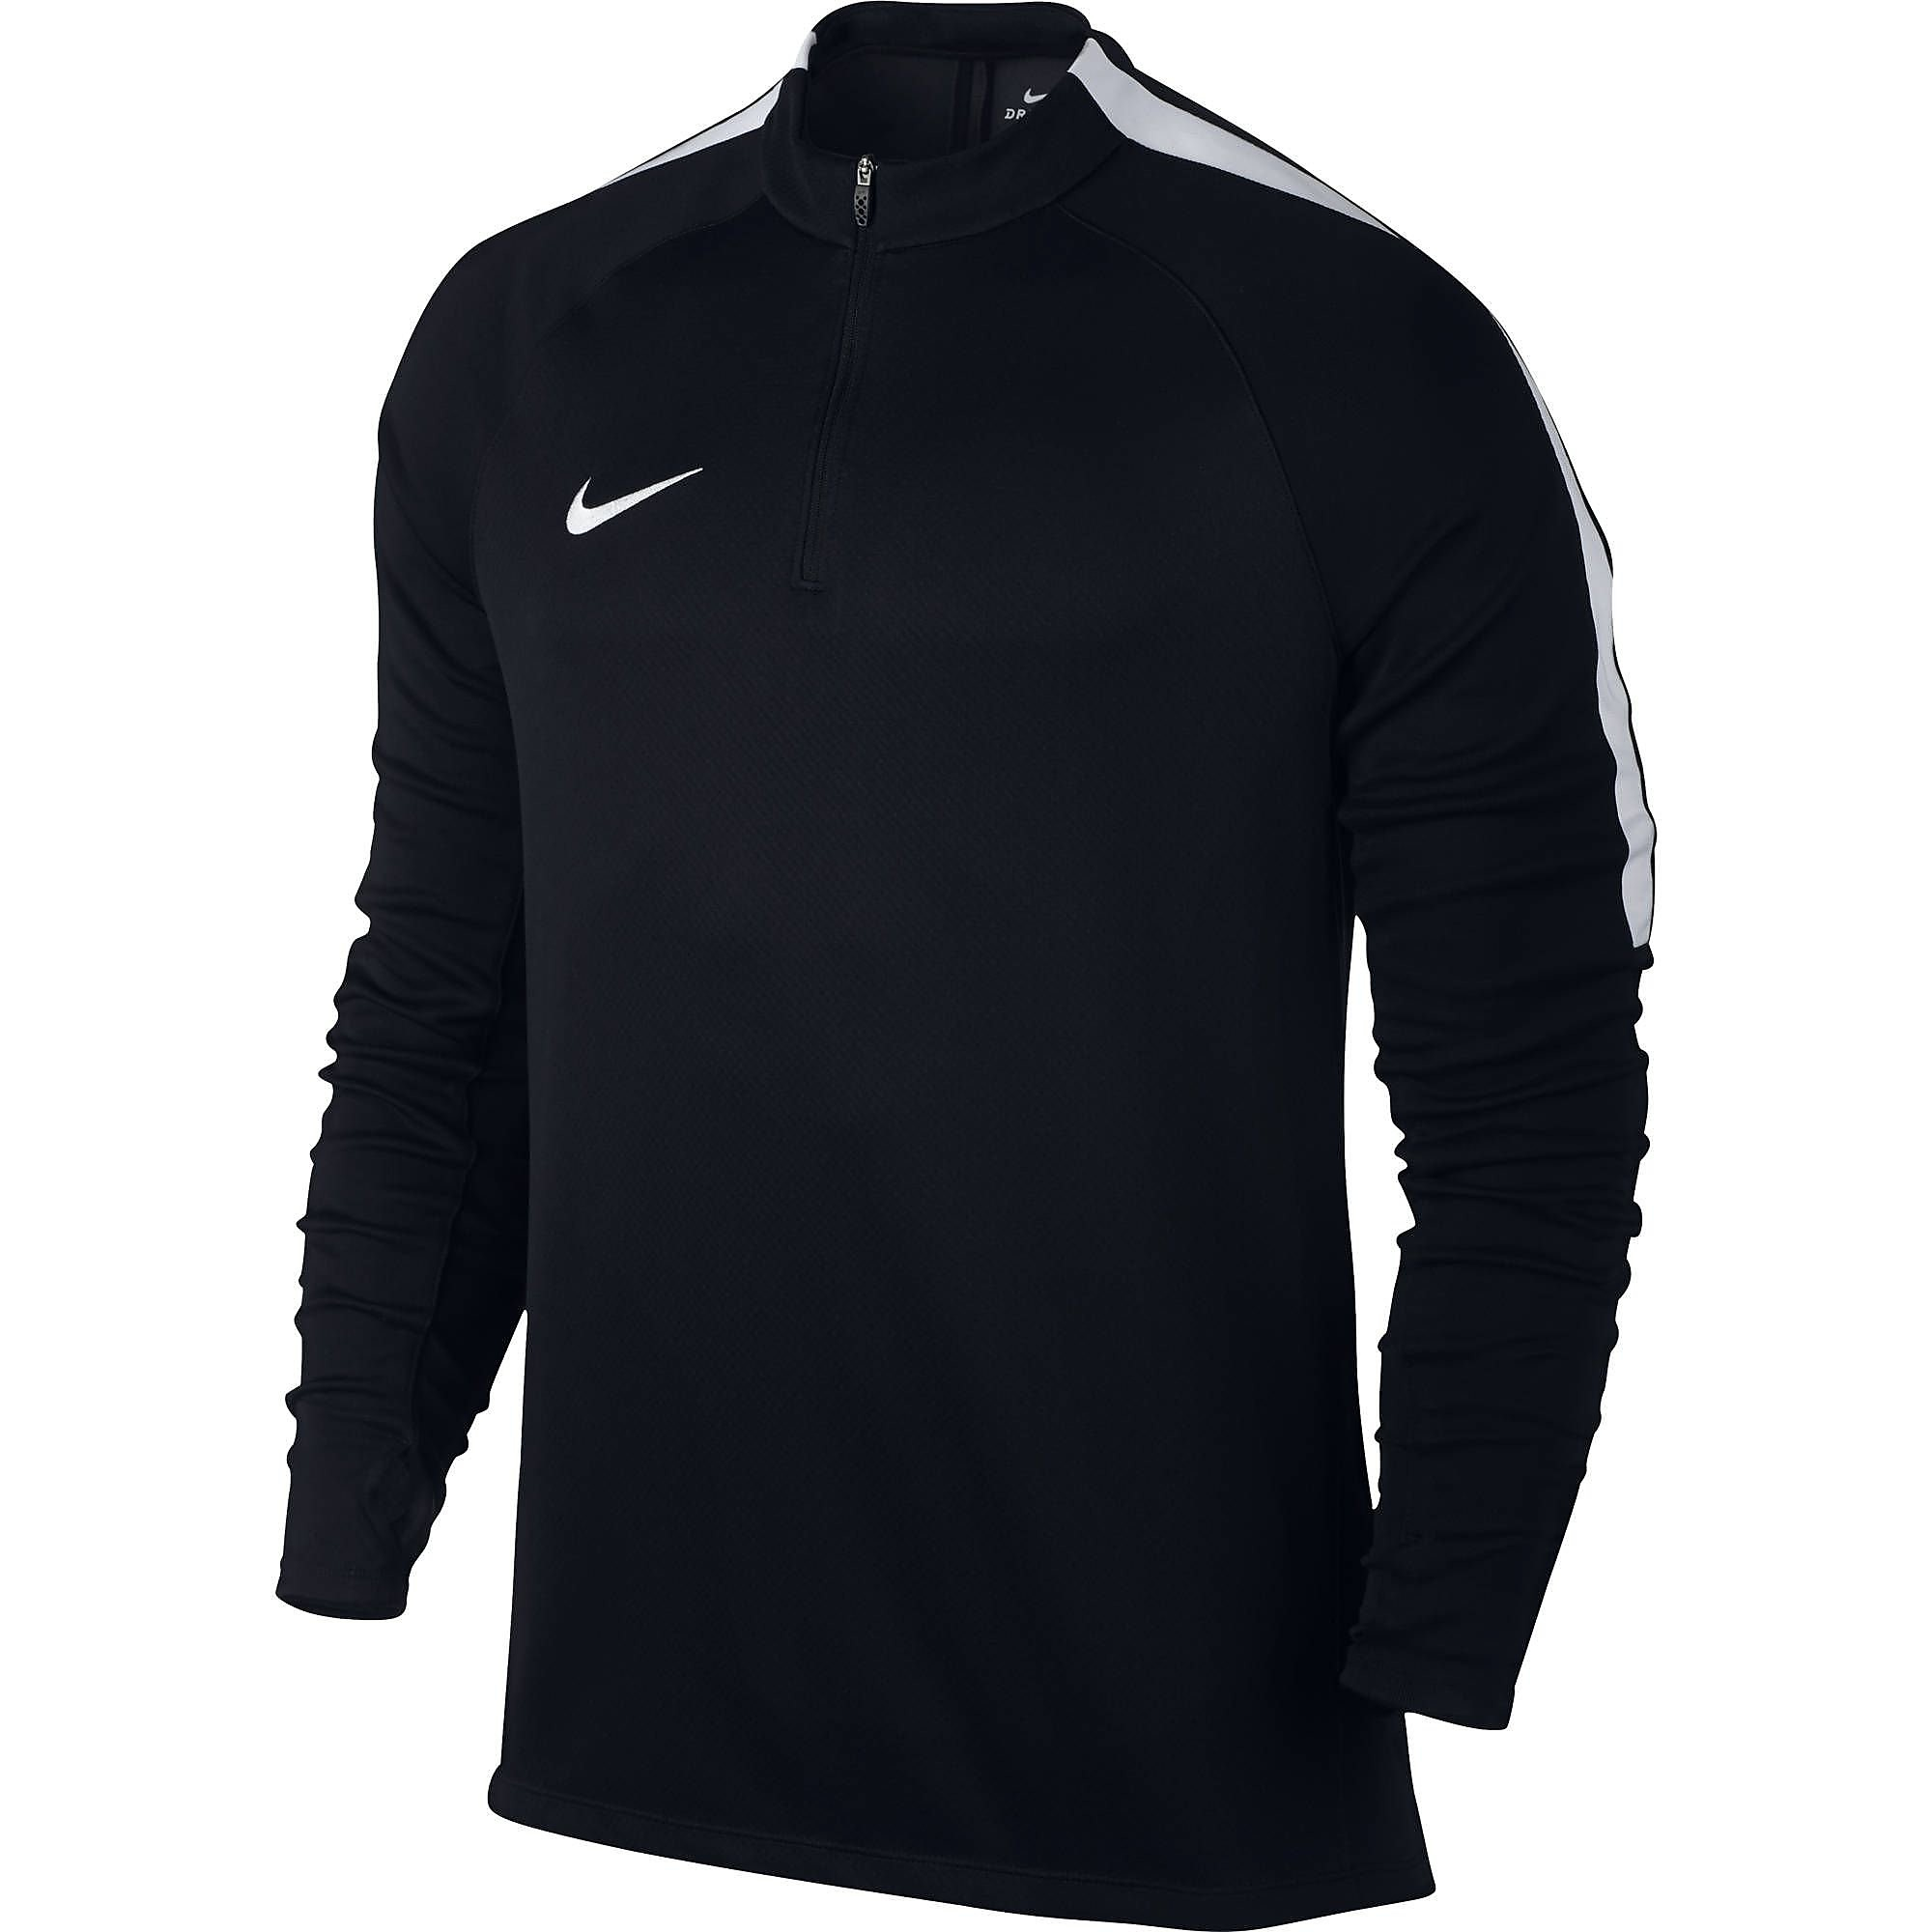 Nike DRIL SQUAD TOP